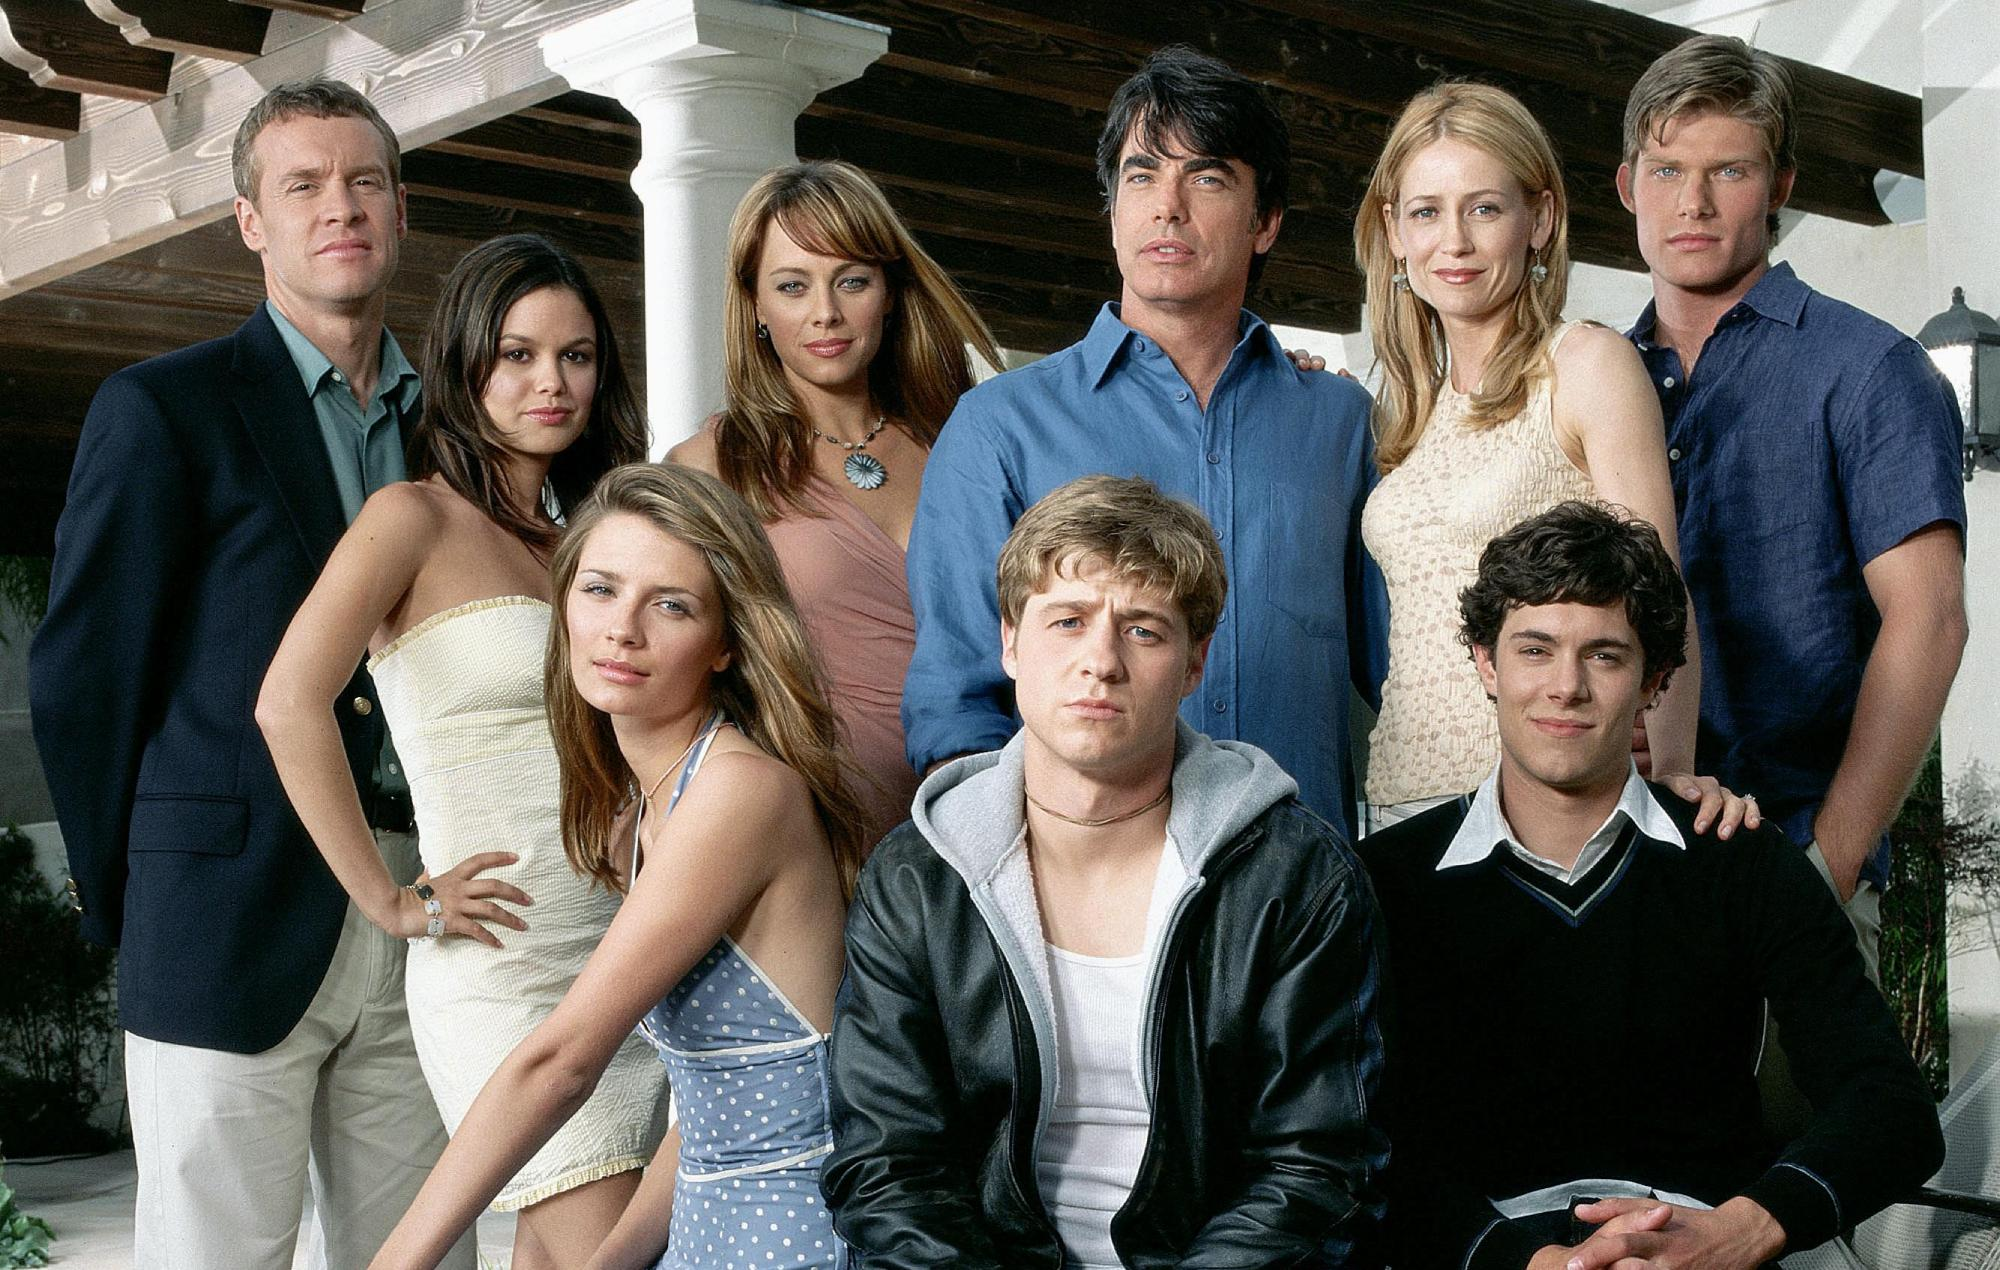 """Rachel Bilson and Melinda Clarke are """"down"""" for 'The O.C.' reboot"""